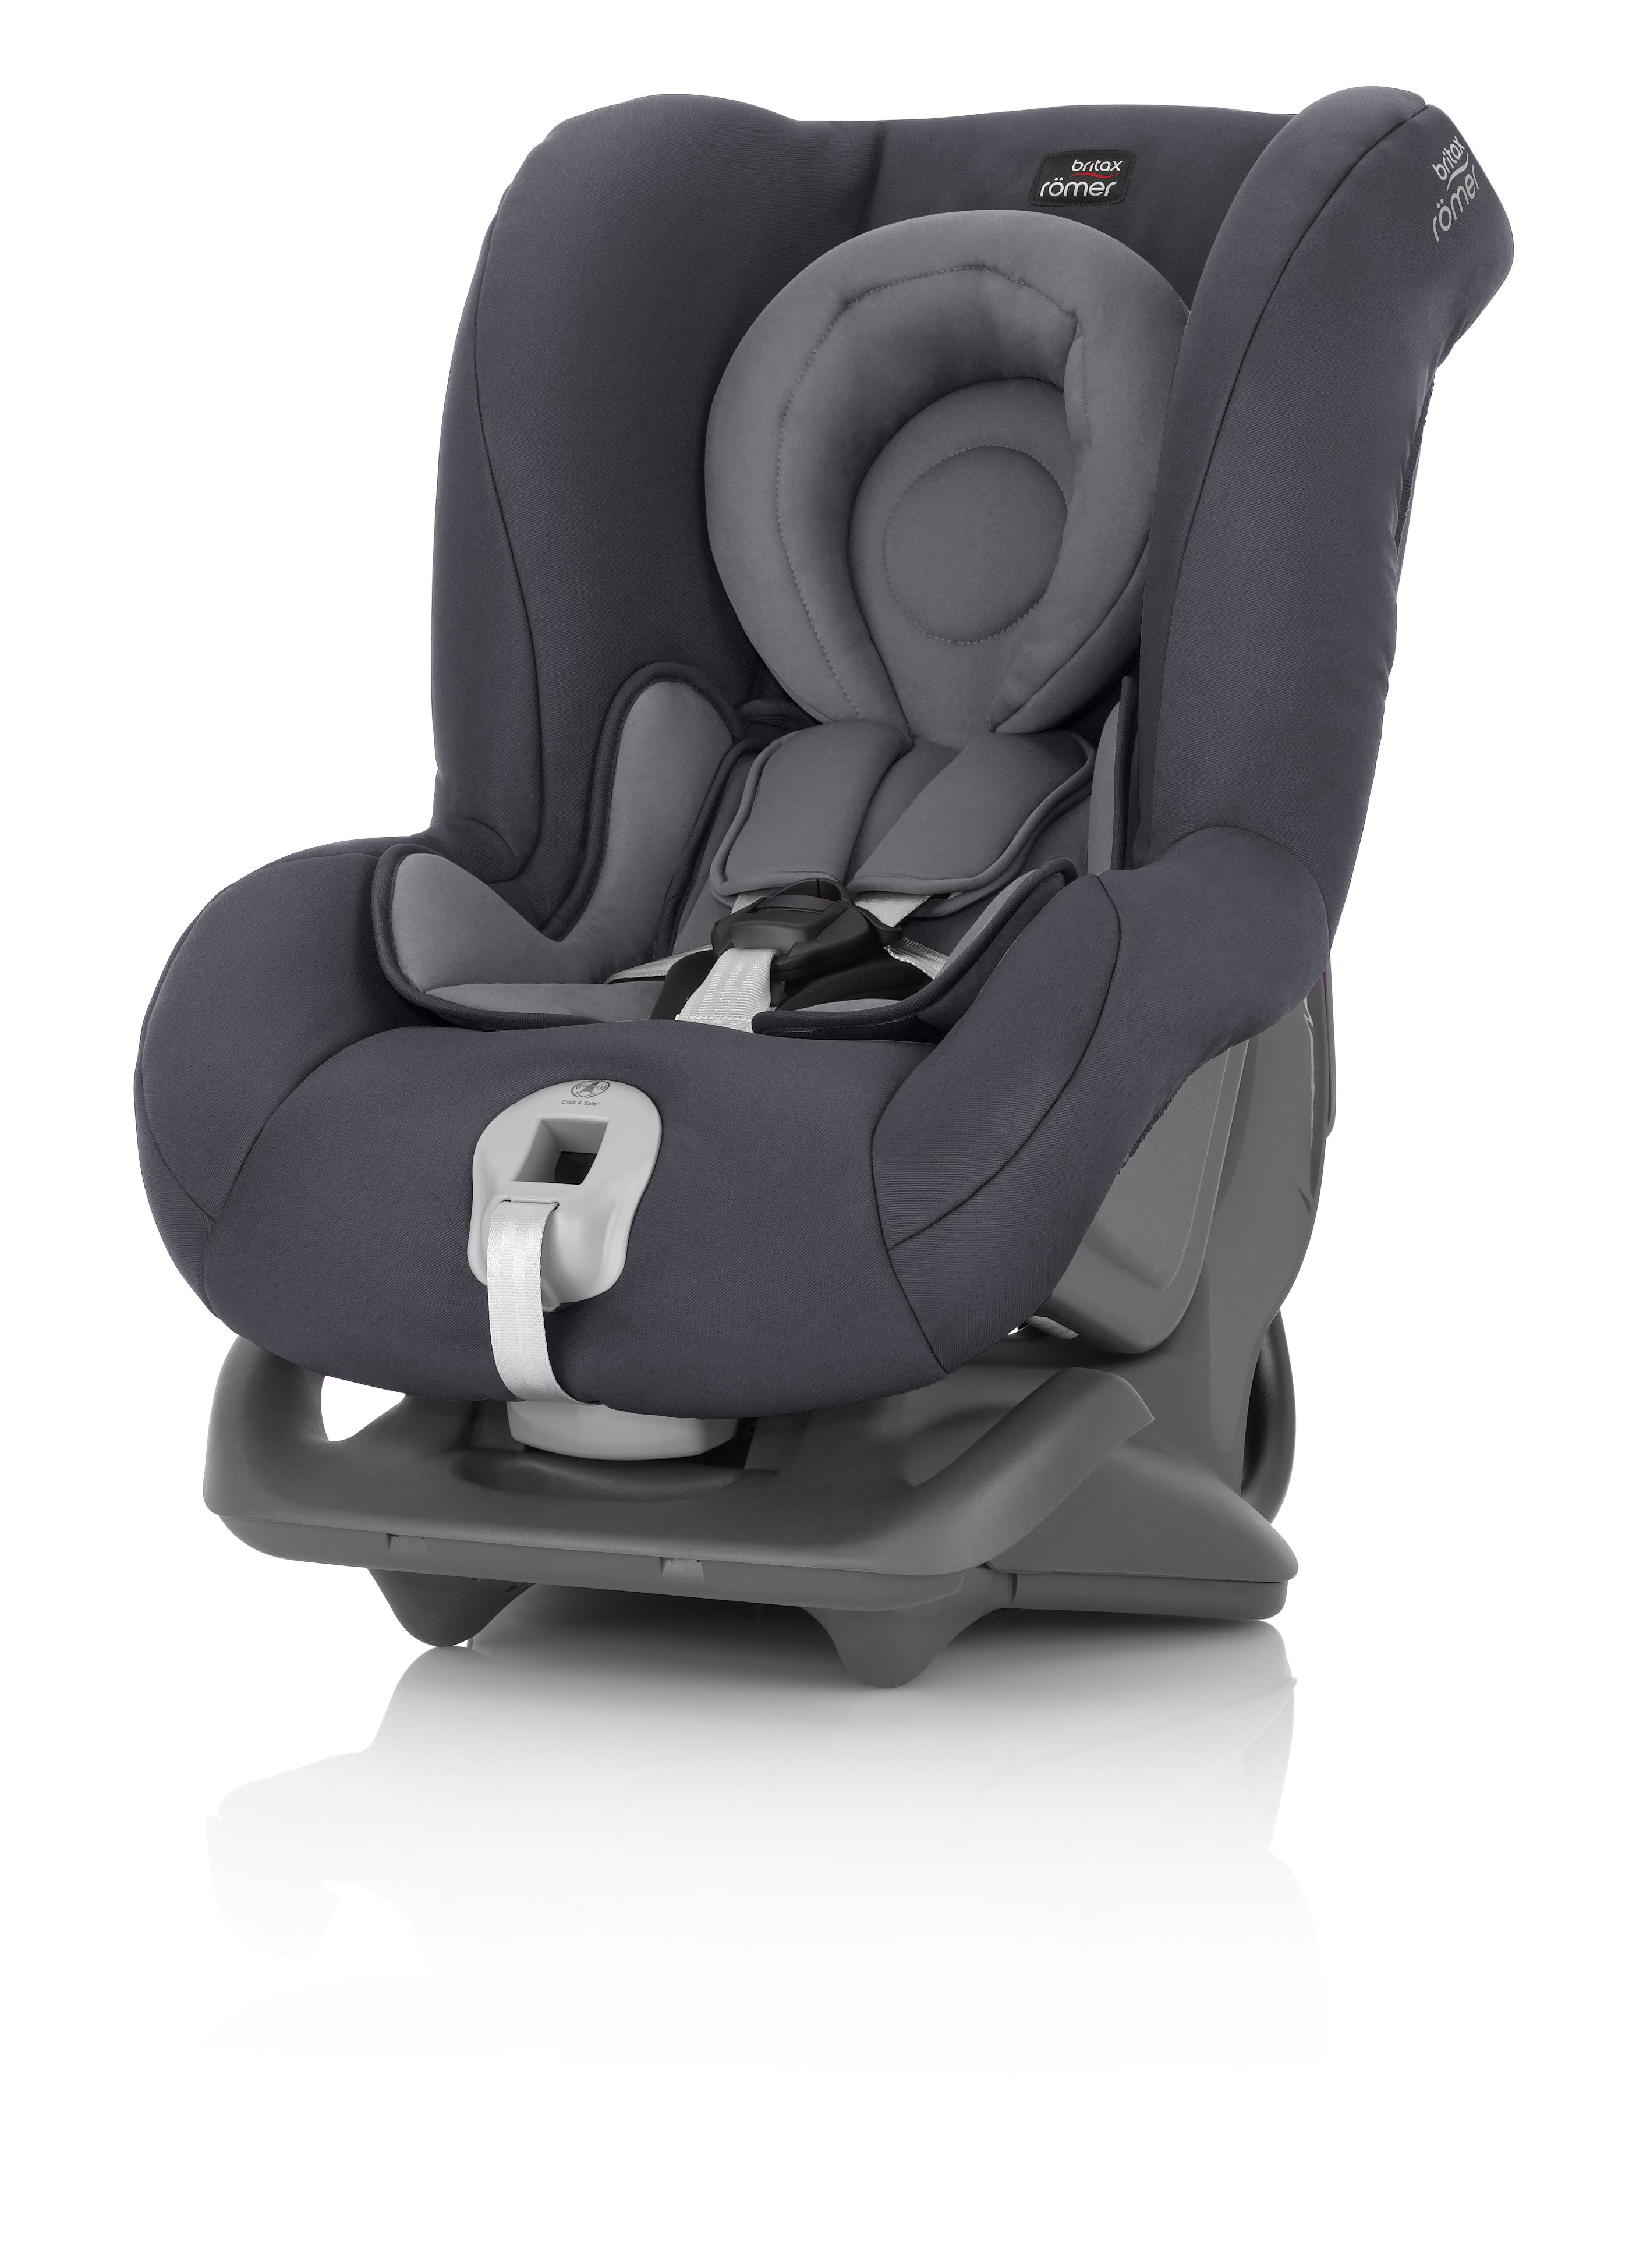 Автокресло Britax Roemer First Class Plus Storm Grey Trendline, цвет: серый